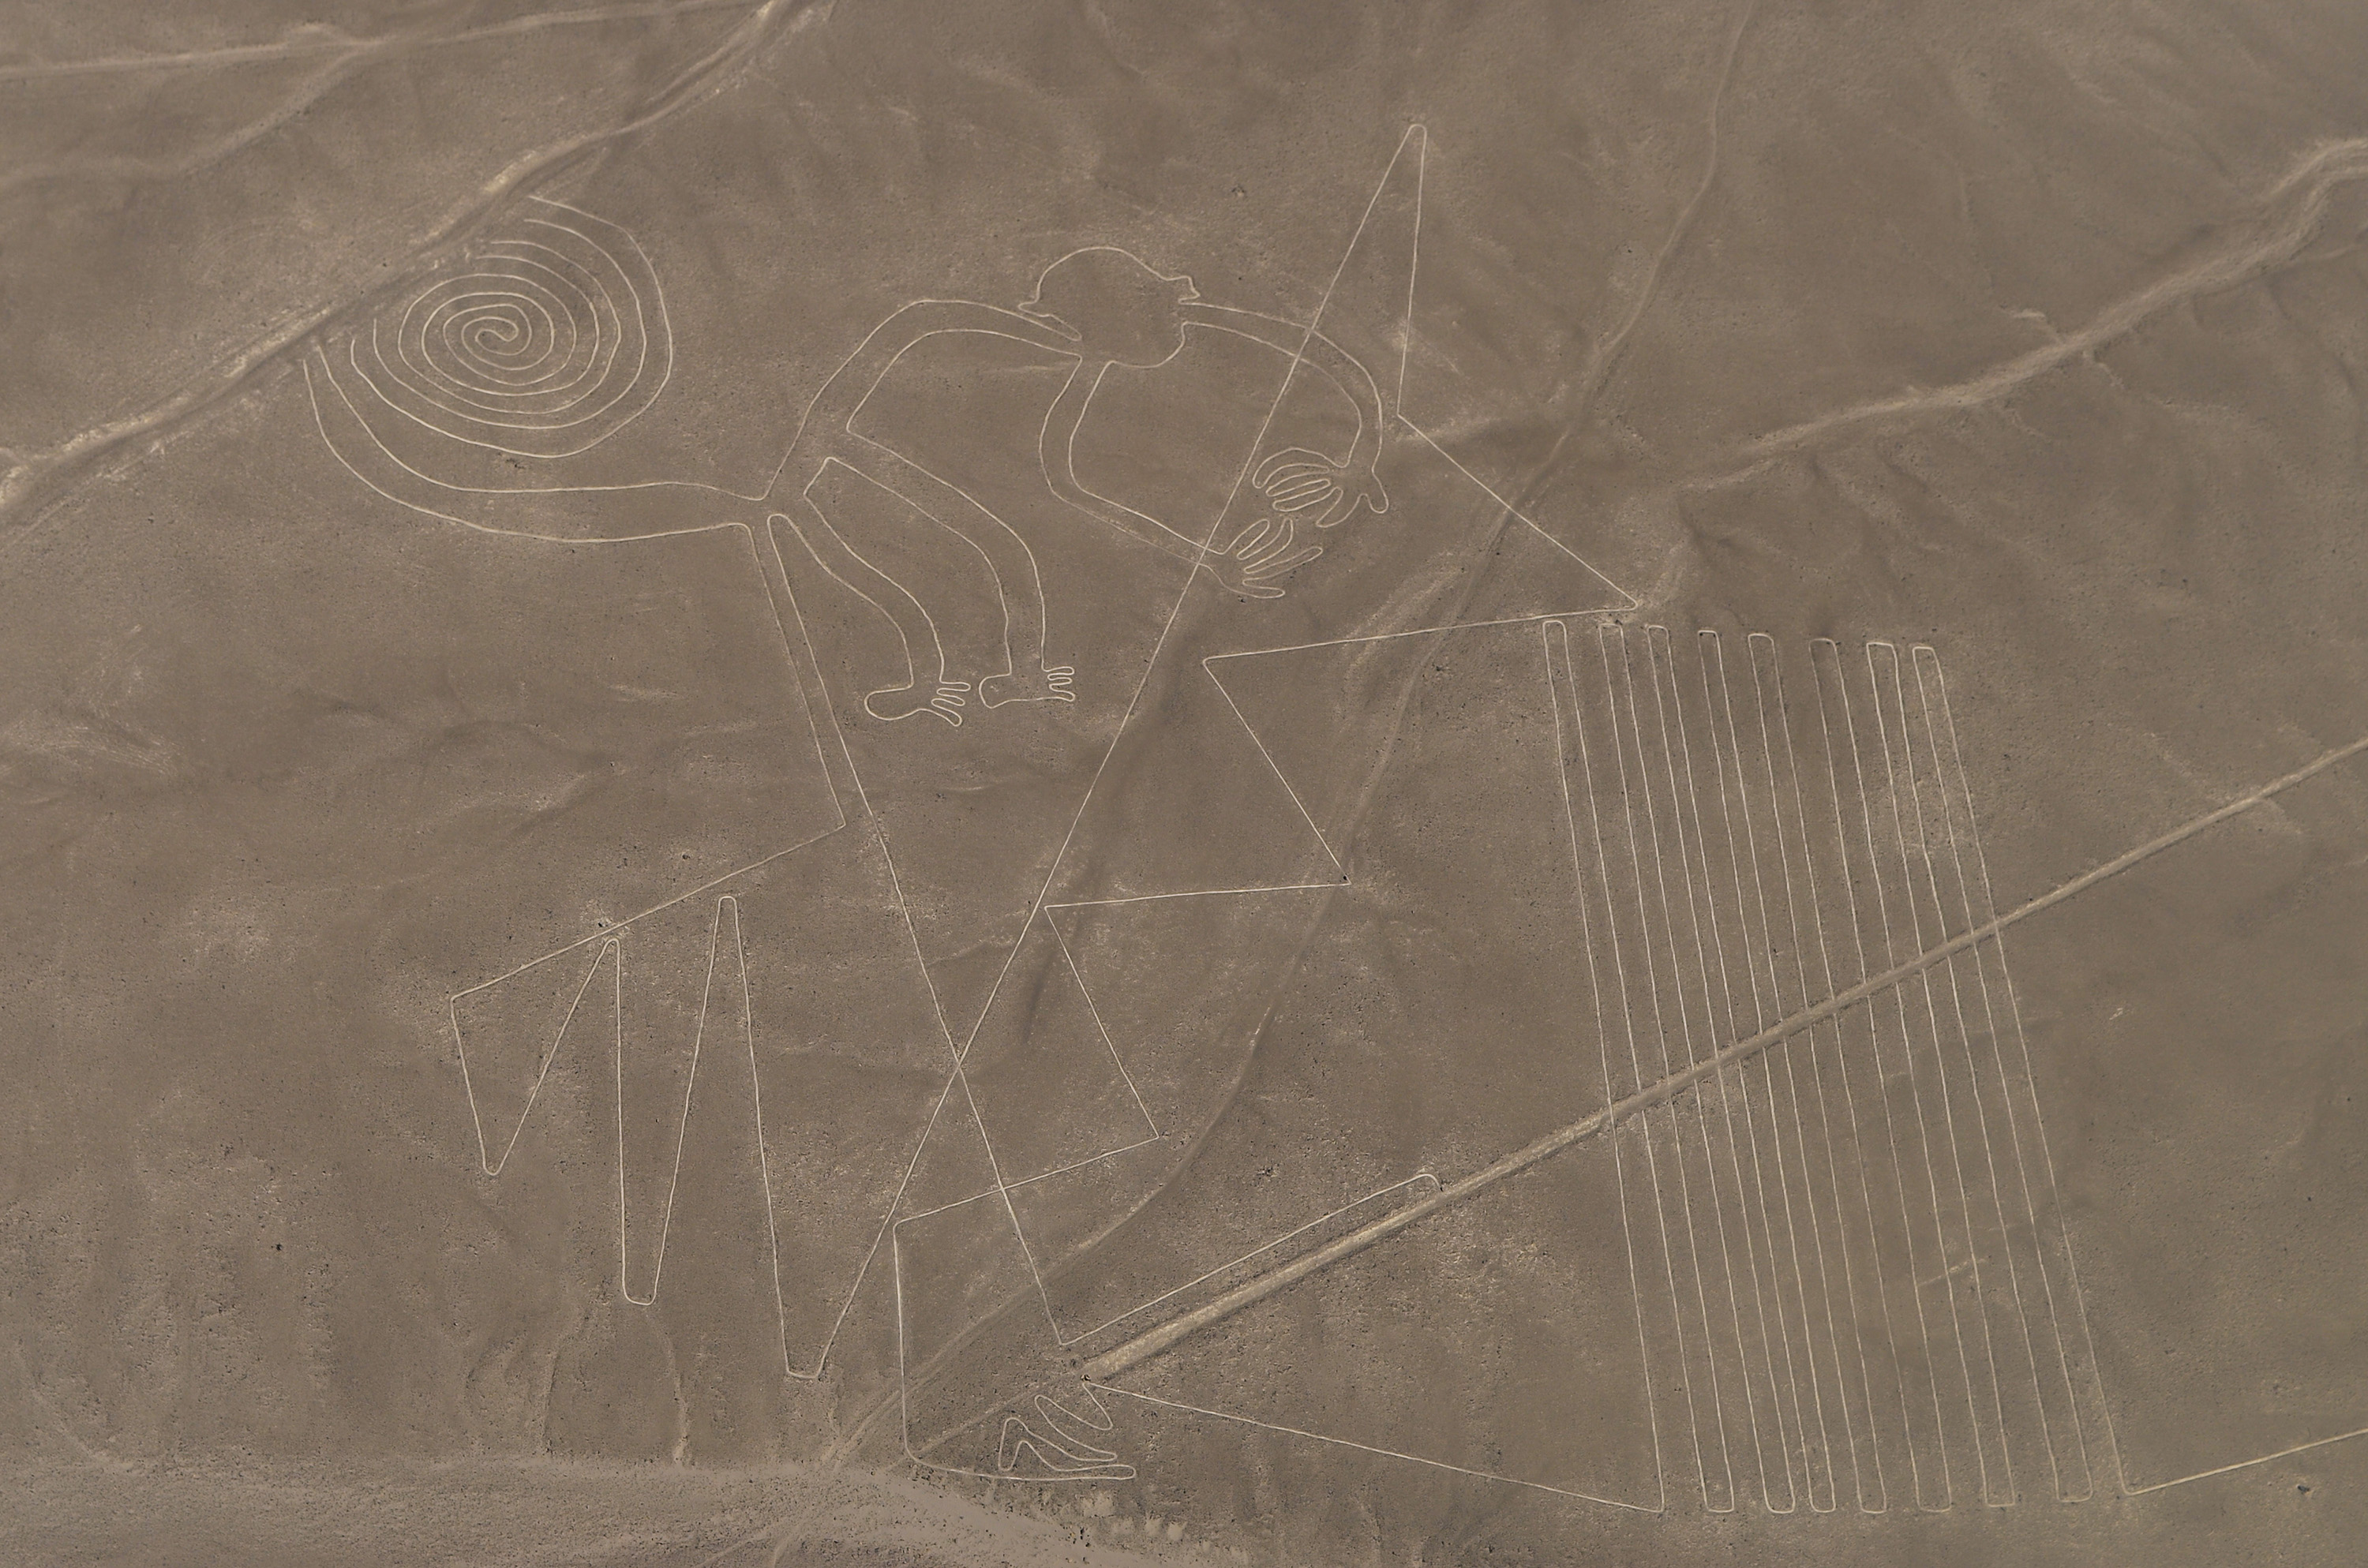 Lines and Geoglyphs in the Nazca desert